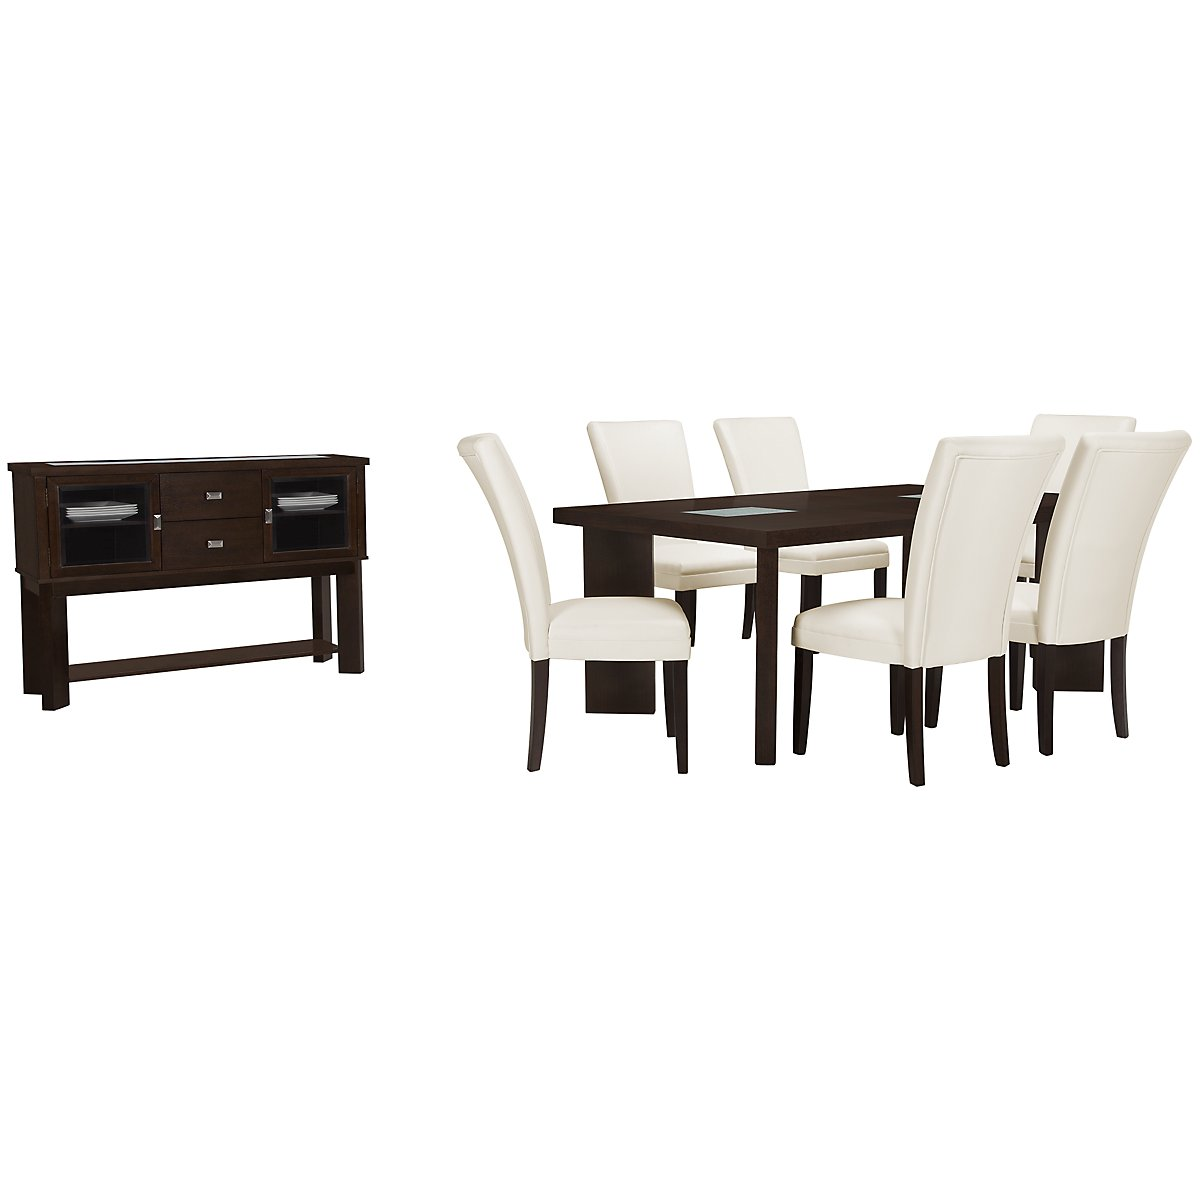 Delano2 White Rectangular Dining Room